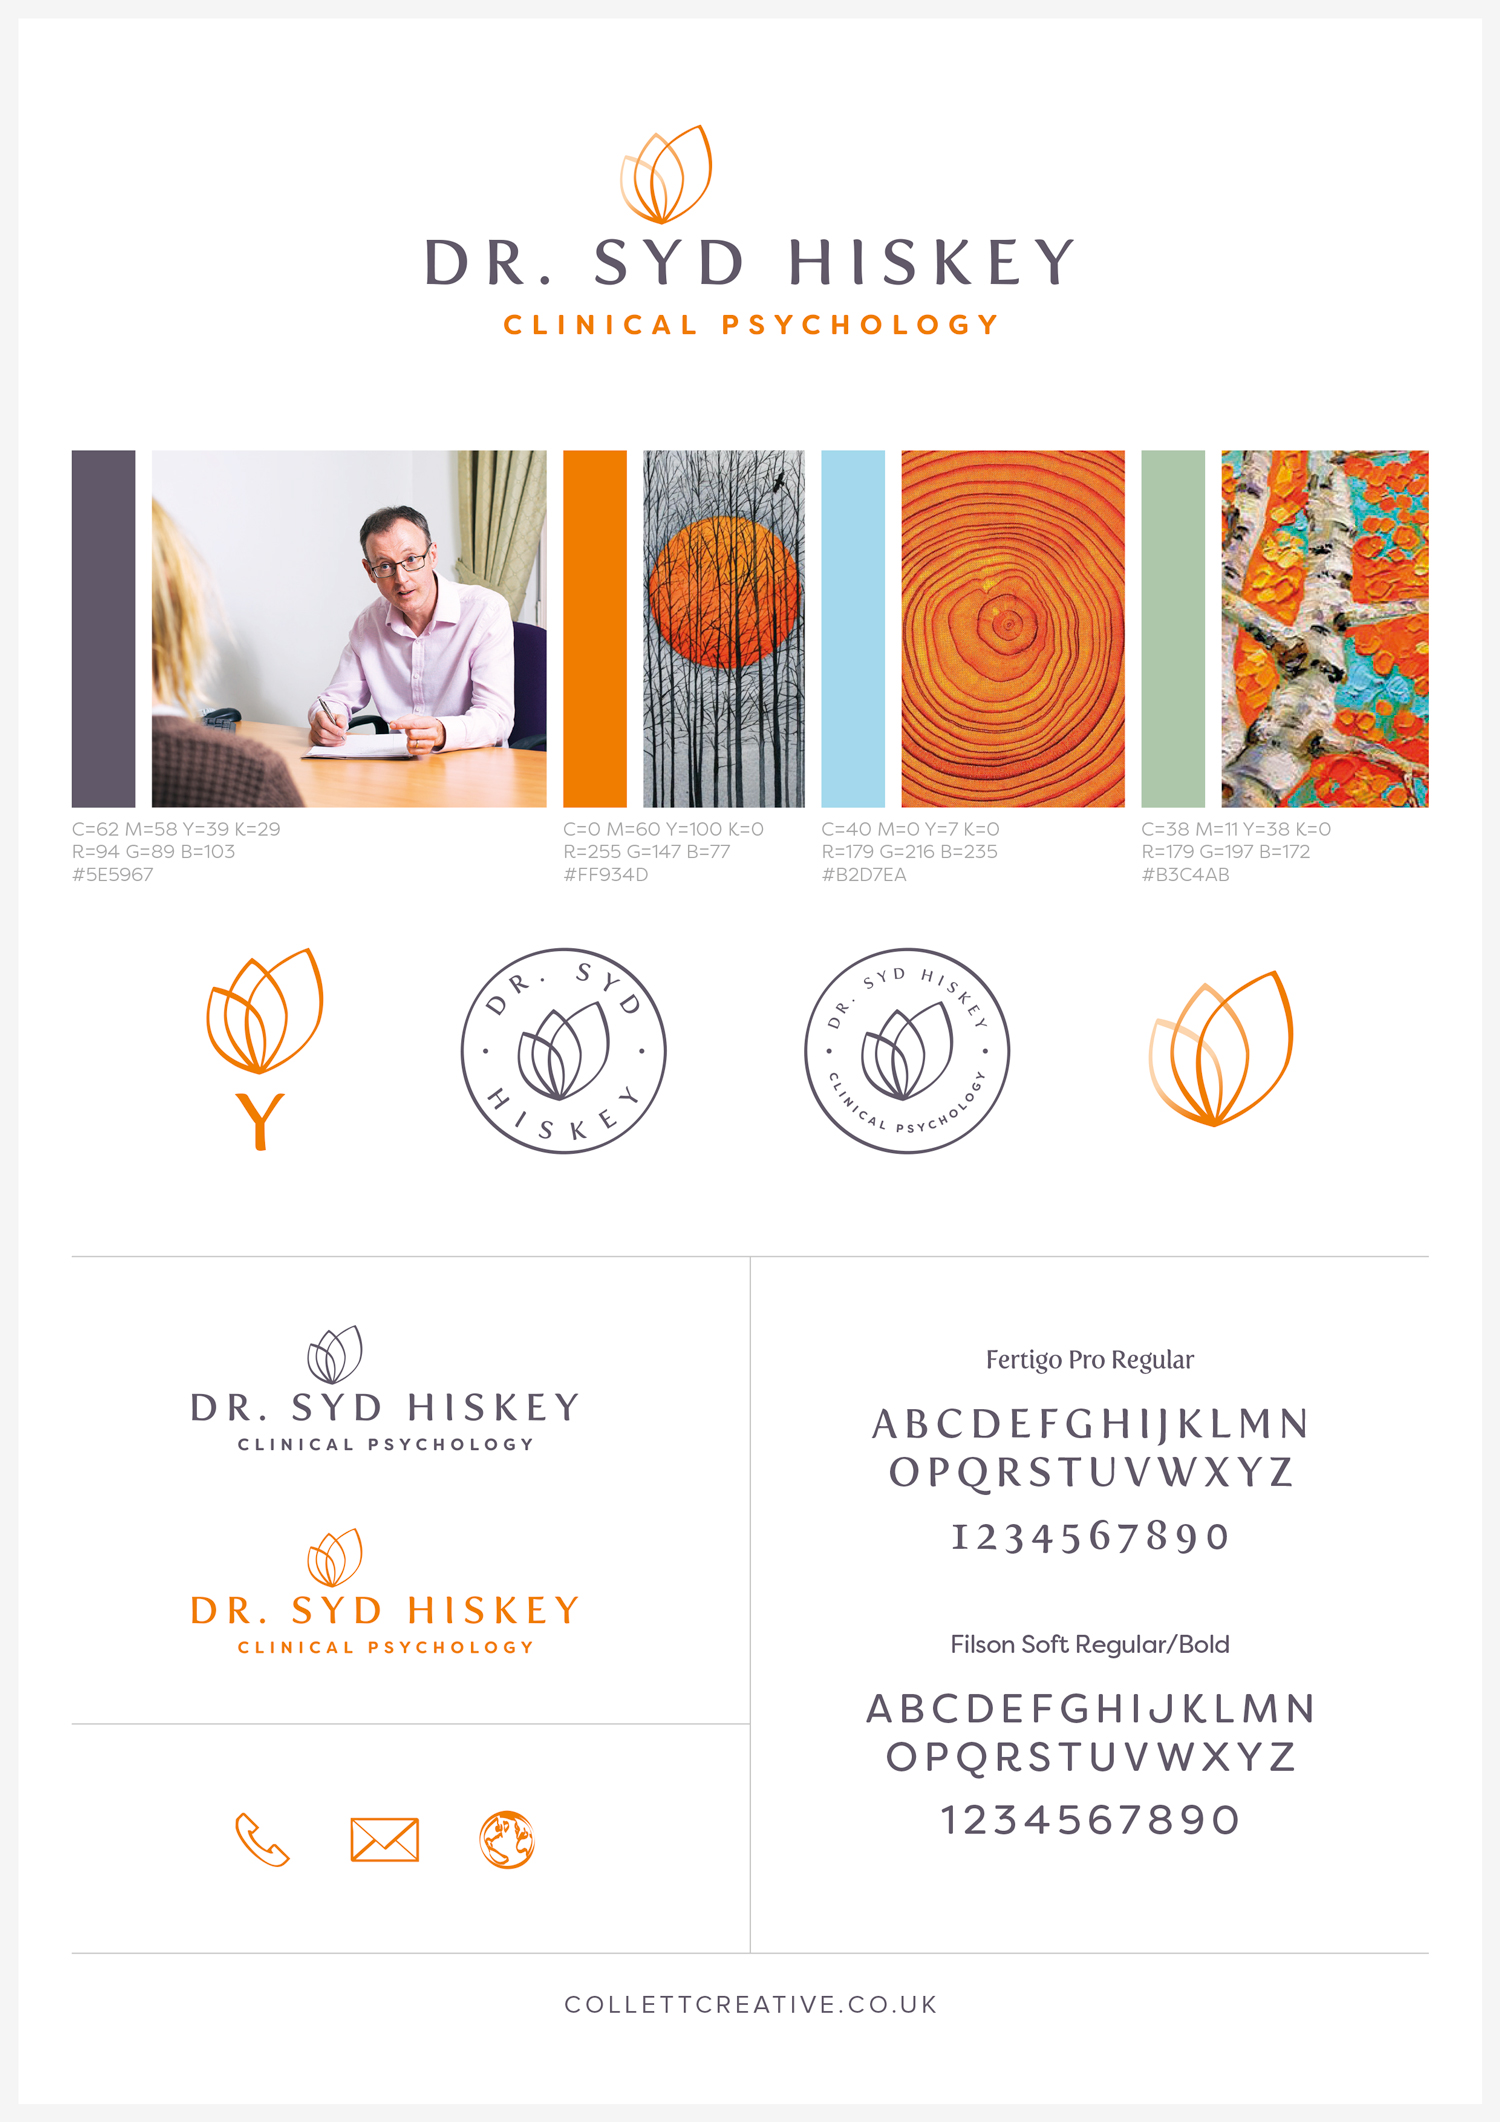 Brand Board for Dr. Syd Hiskey (Positive)